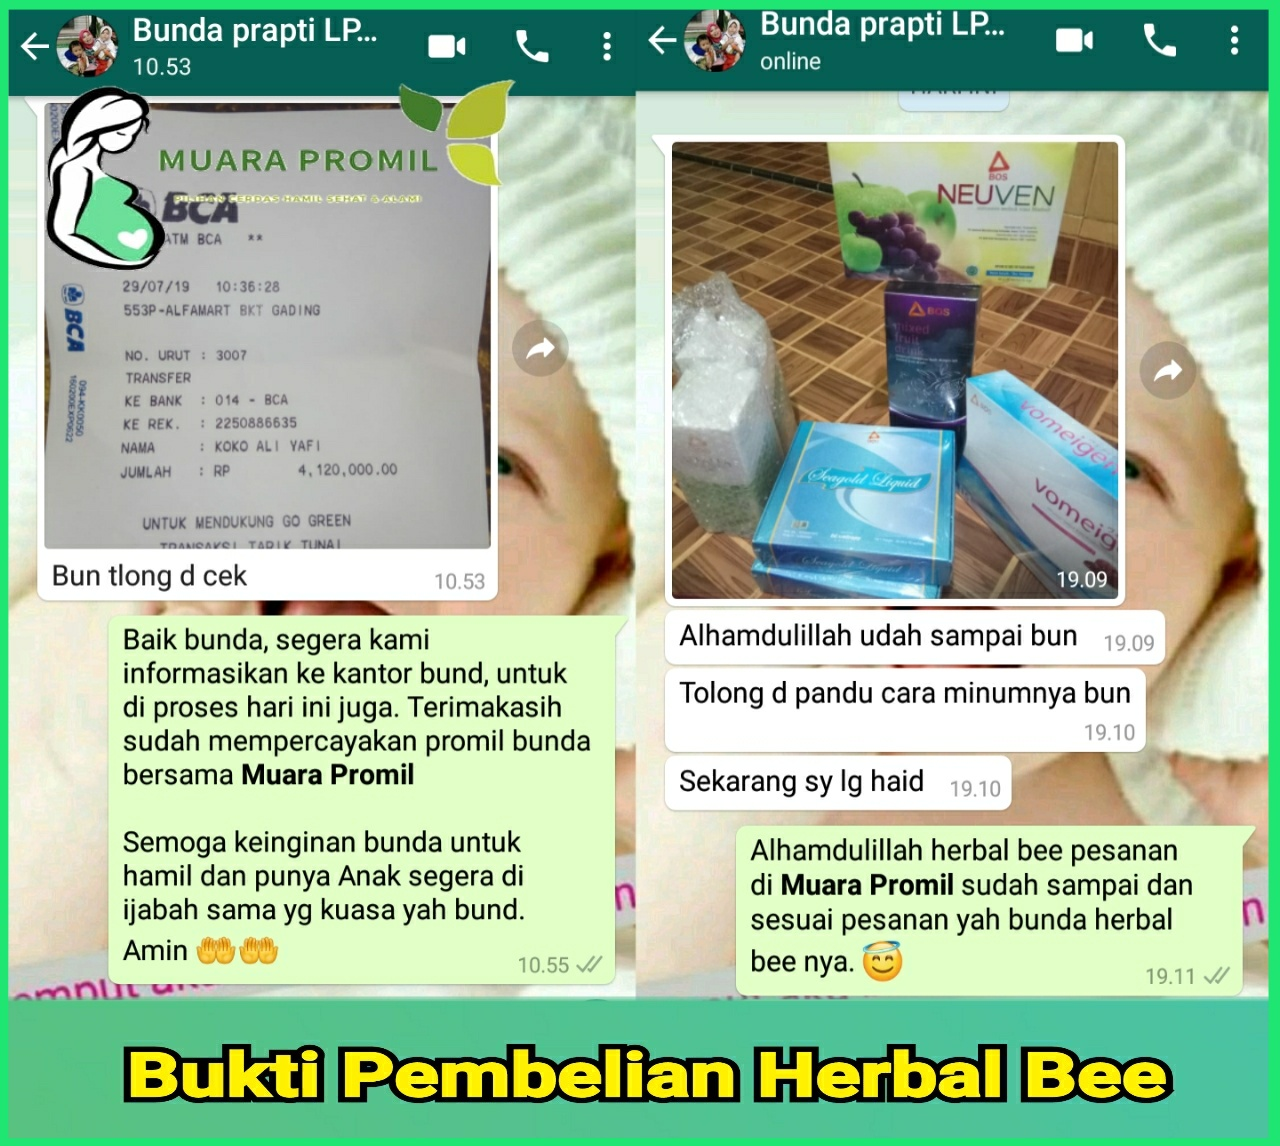 Bukti Penjualan Herbal Bee di lombok